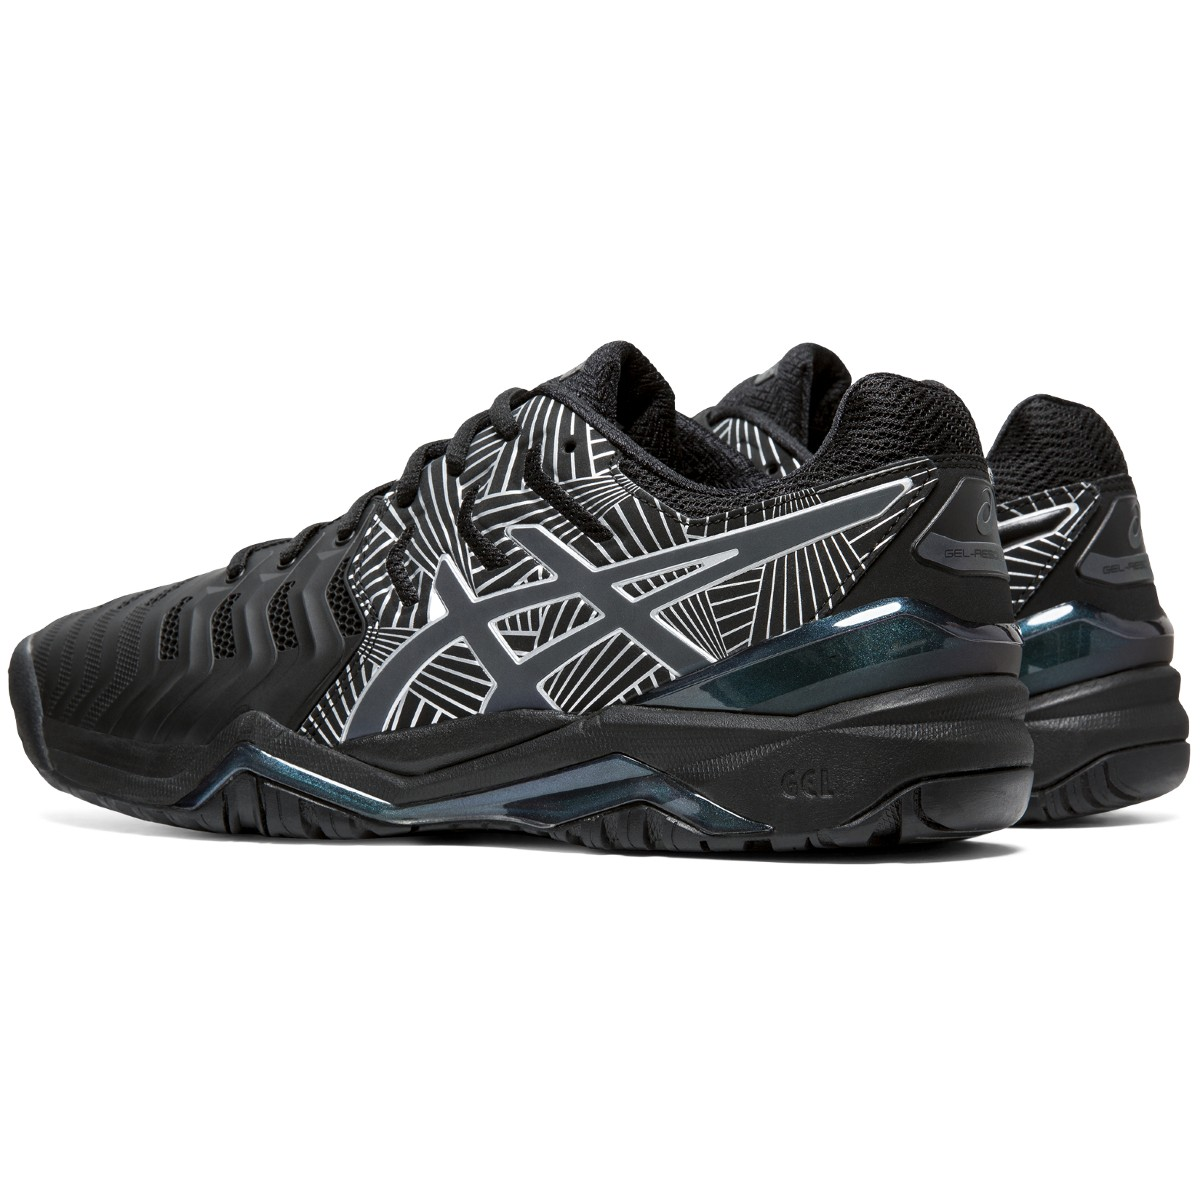 CHAUSSURES ASICS GEL RESOLUTION 7 NYC TOUTES SURFACES